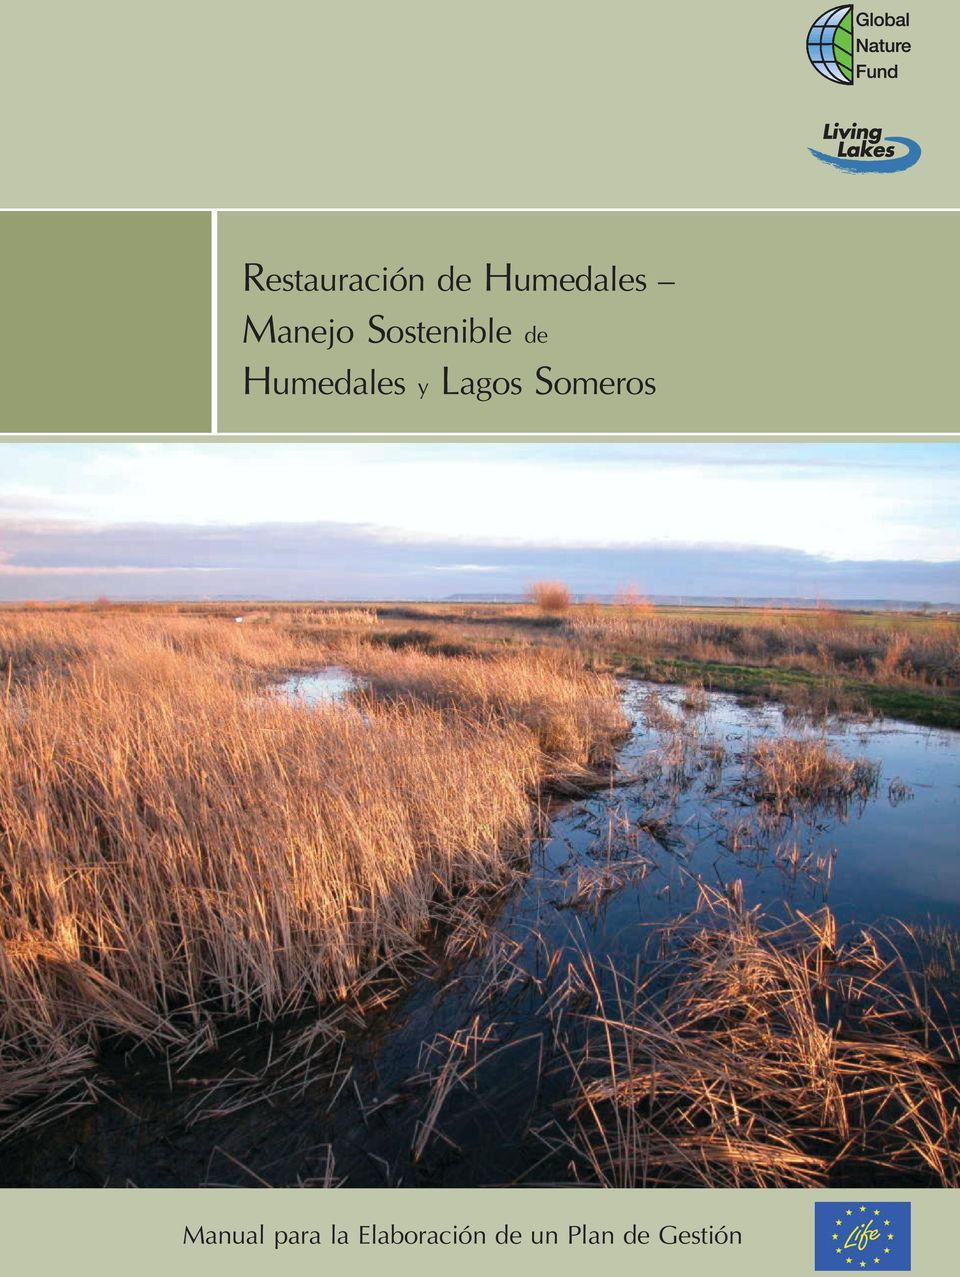 Someros Manual para la Elaboración de